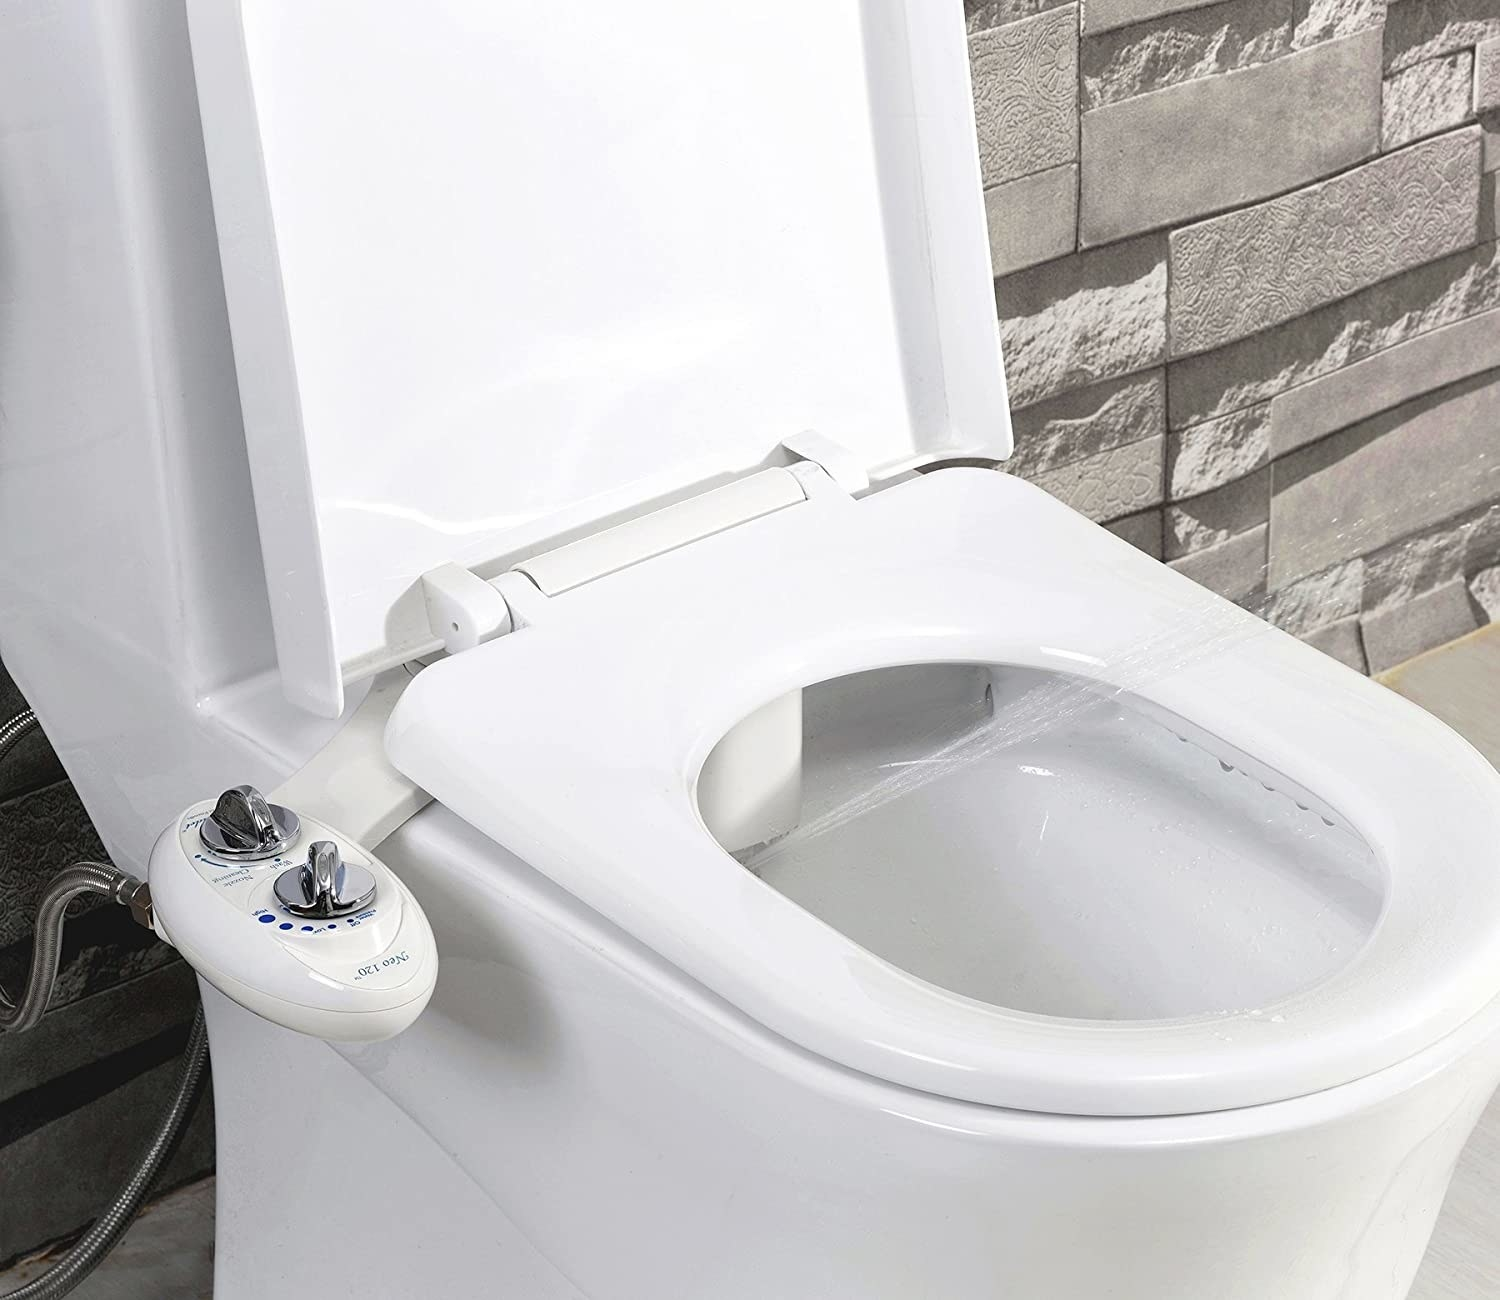 The bidet, attached to the side of a toilet